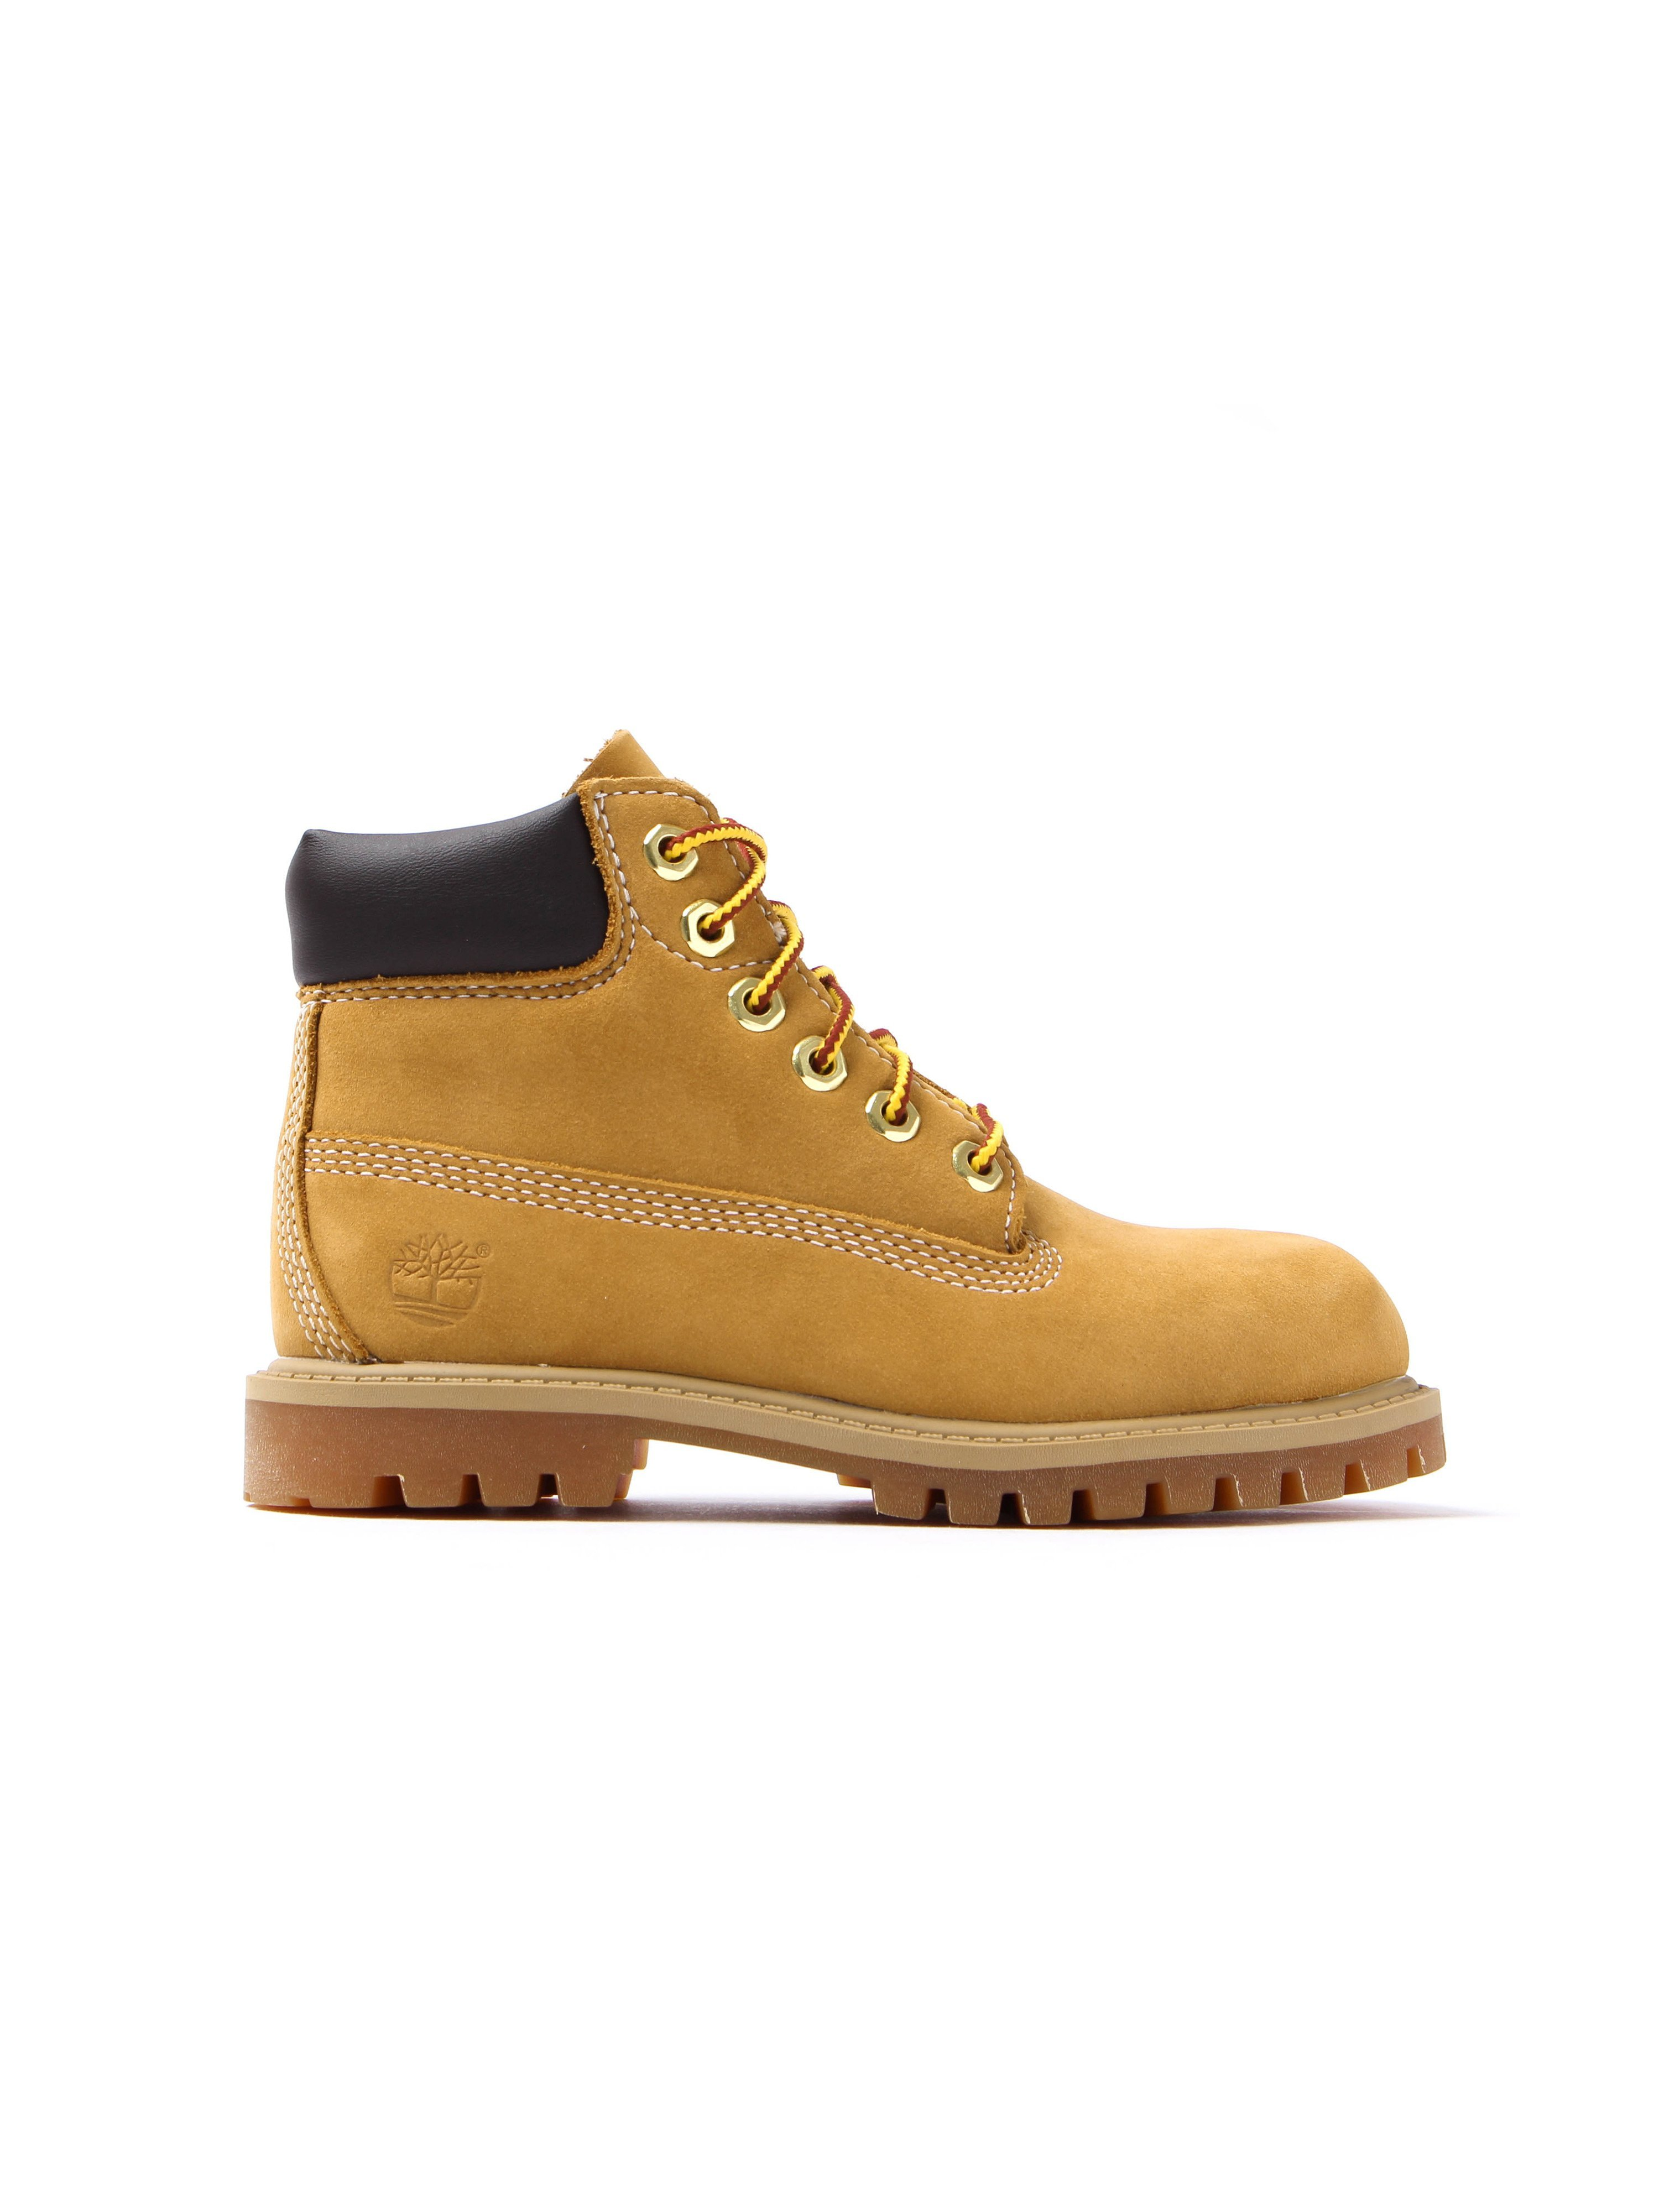 Timberland Infant Timber Tykes Hook and Loop - Wheat Nubuck